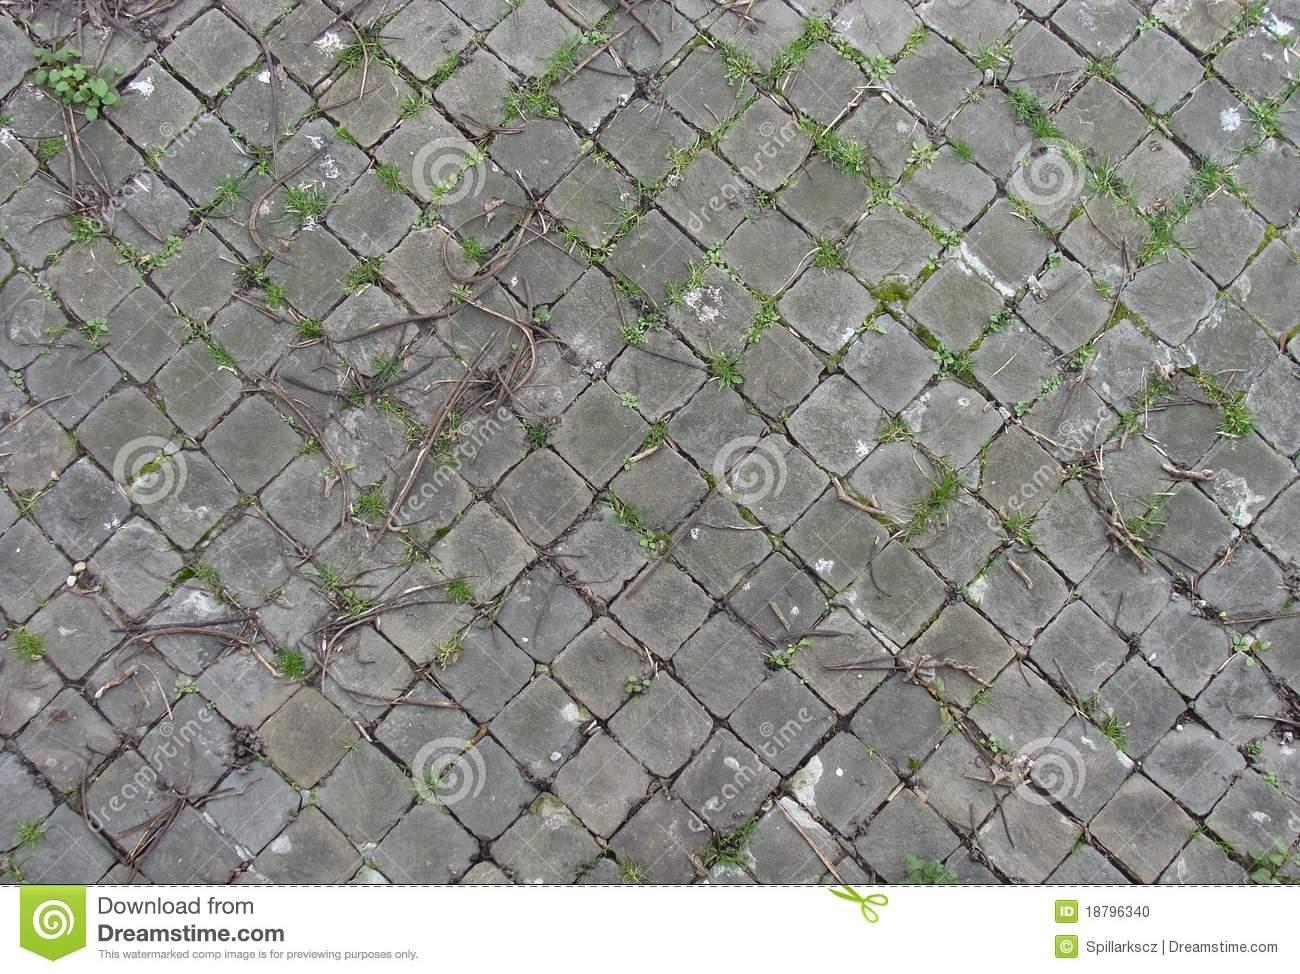 Sidewalk near harbor with square tiles